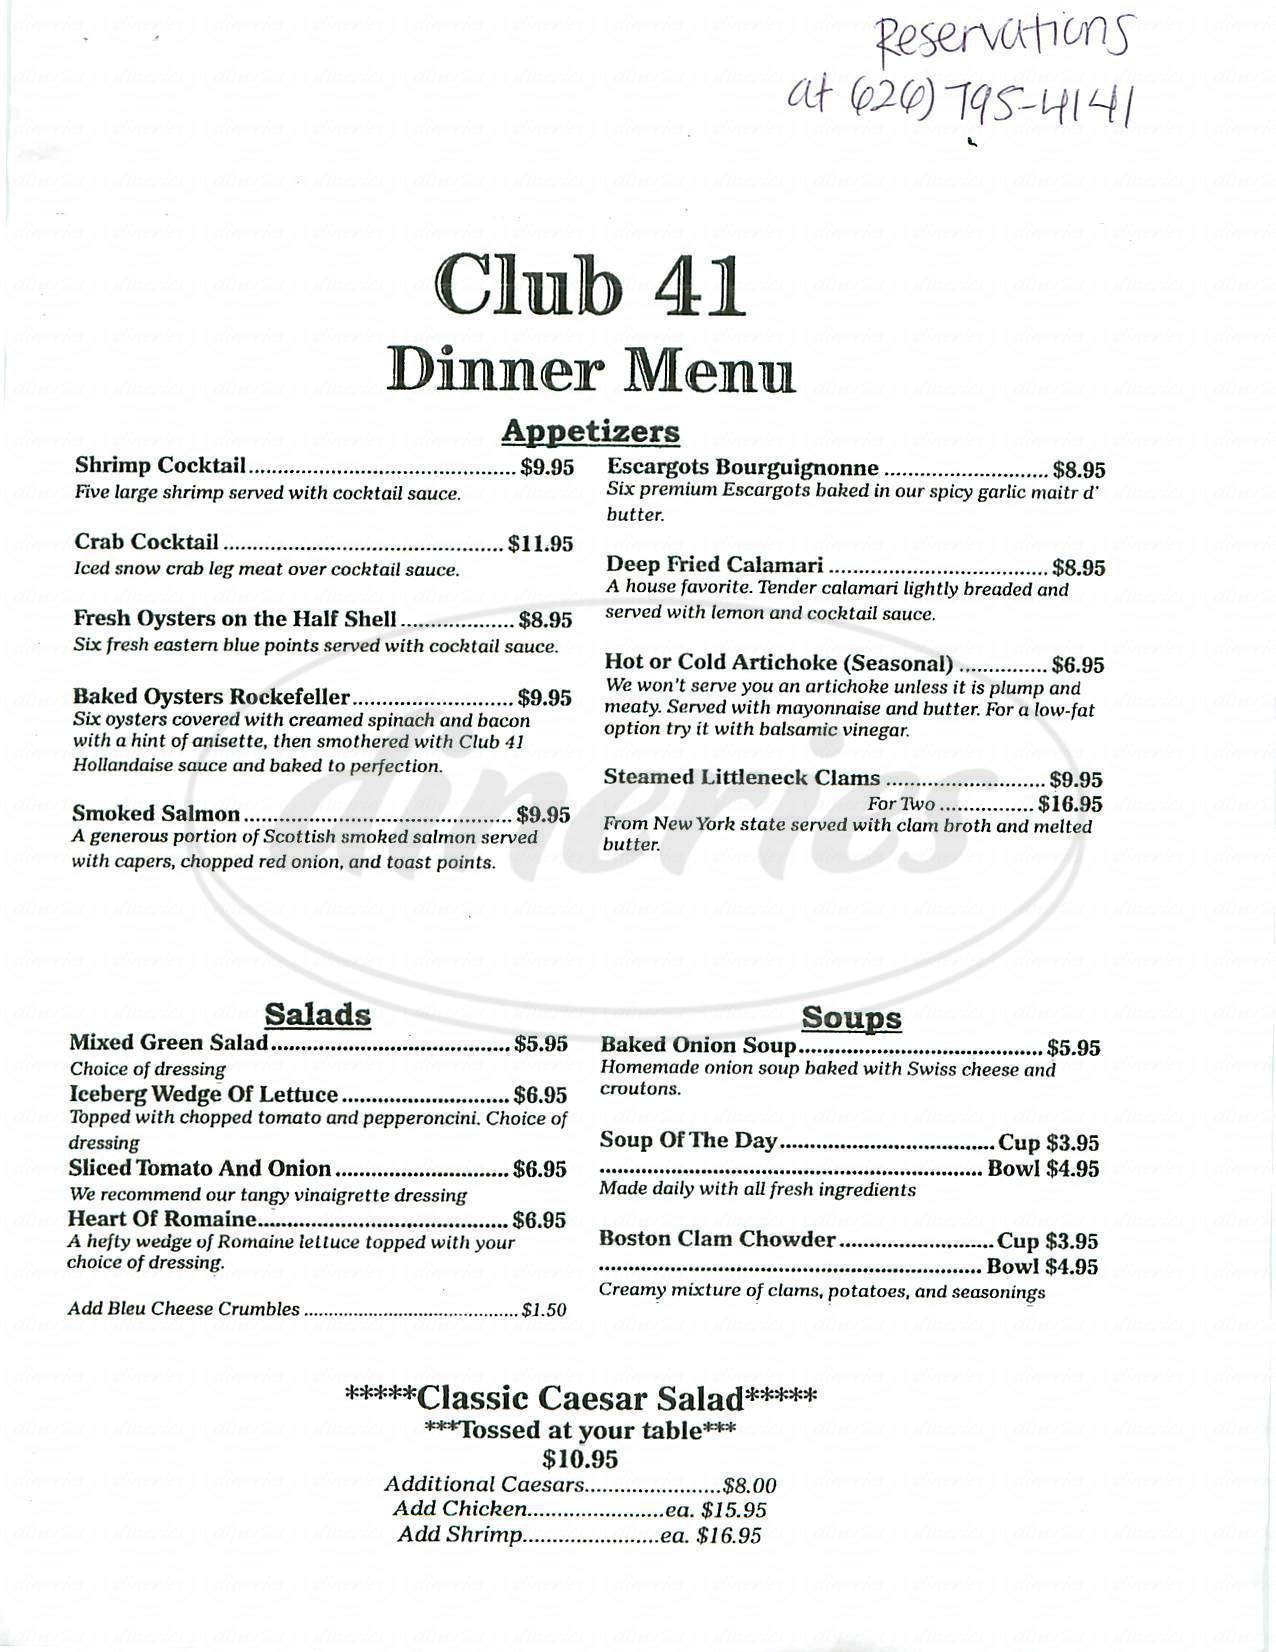 menu for Delacey's Club 41